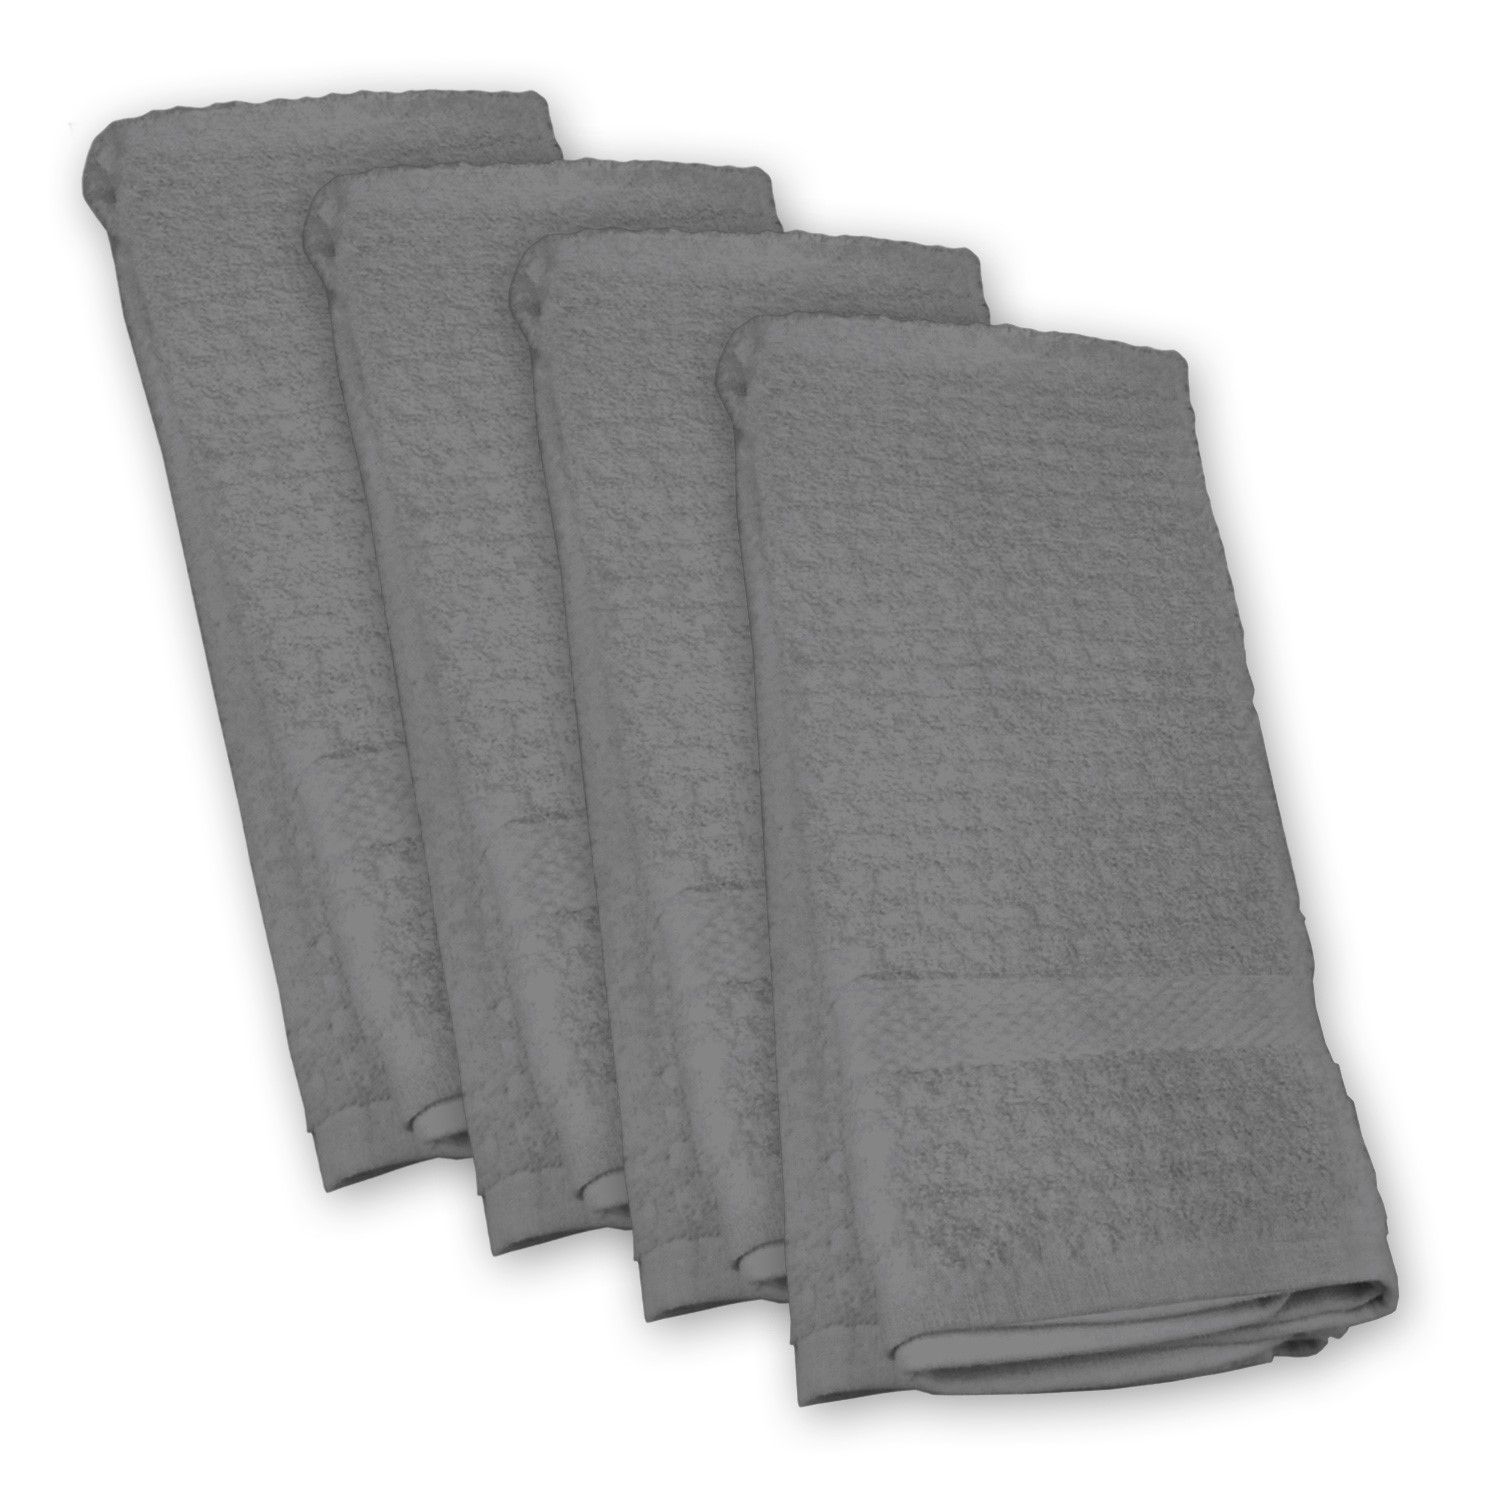 Design Imports Solid Waffle Dishtowel Set (Set of 4), Gray